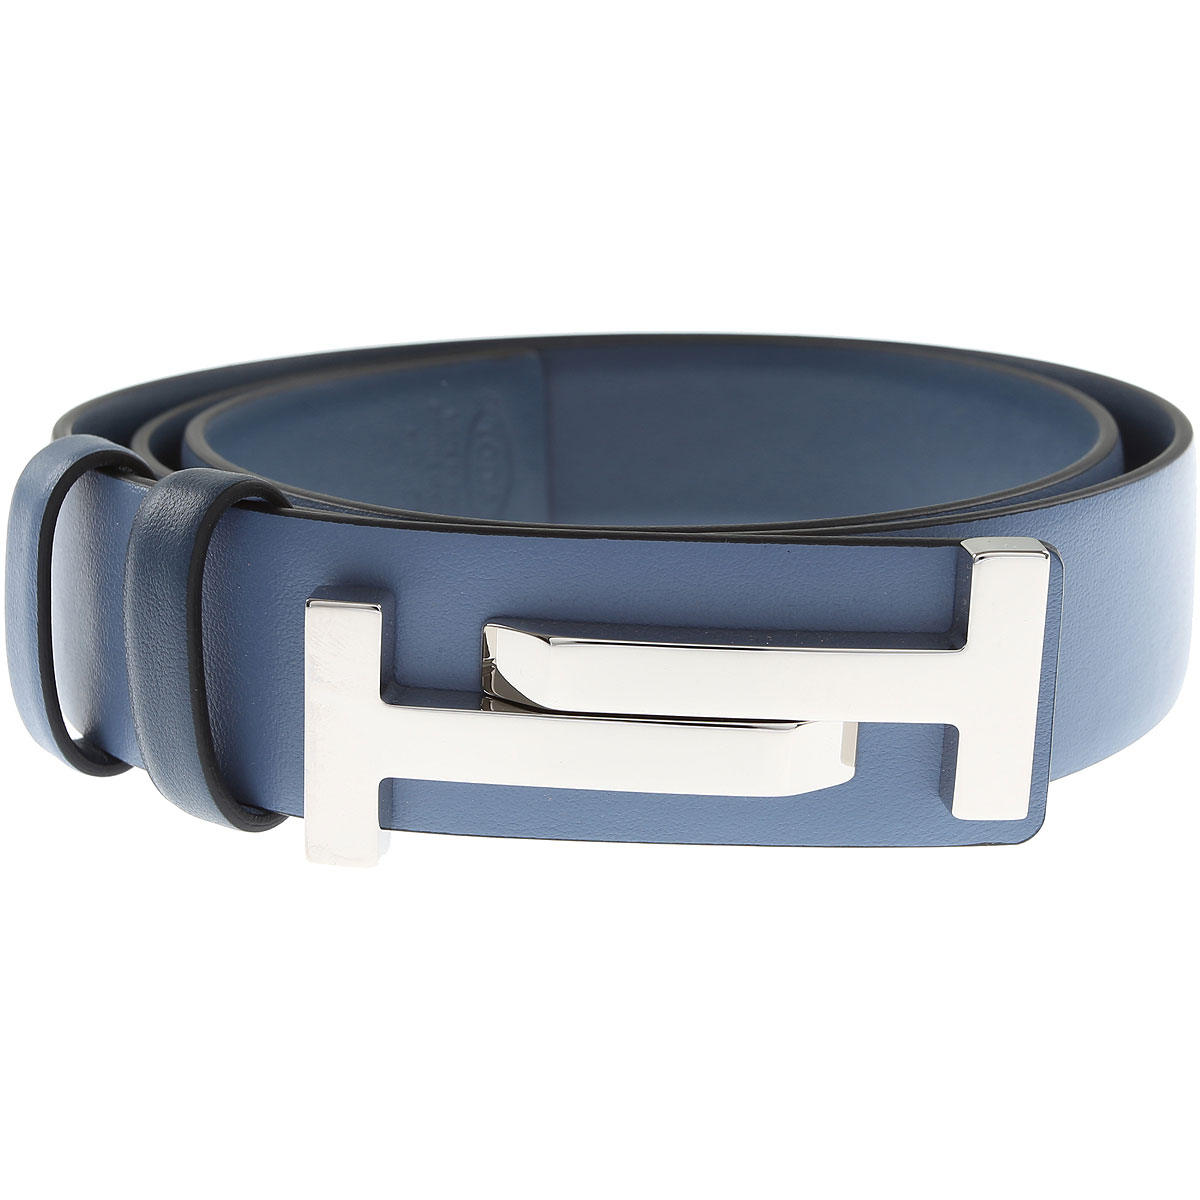 Tods Womens Belts On Sale, Blue, Leather, 2017, 36 inches - 90 cm 32 inches - 80 cm 38 inches - 95 cm 30 inches - 75 cm